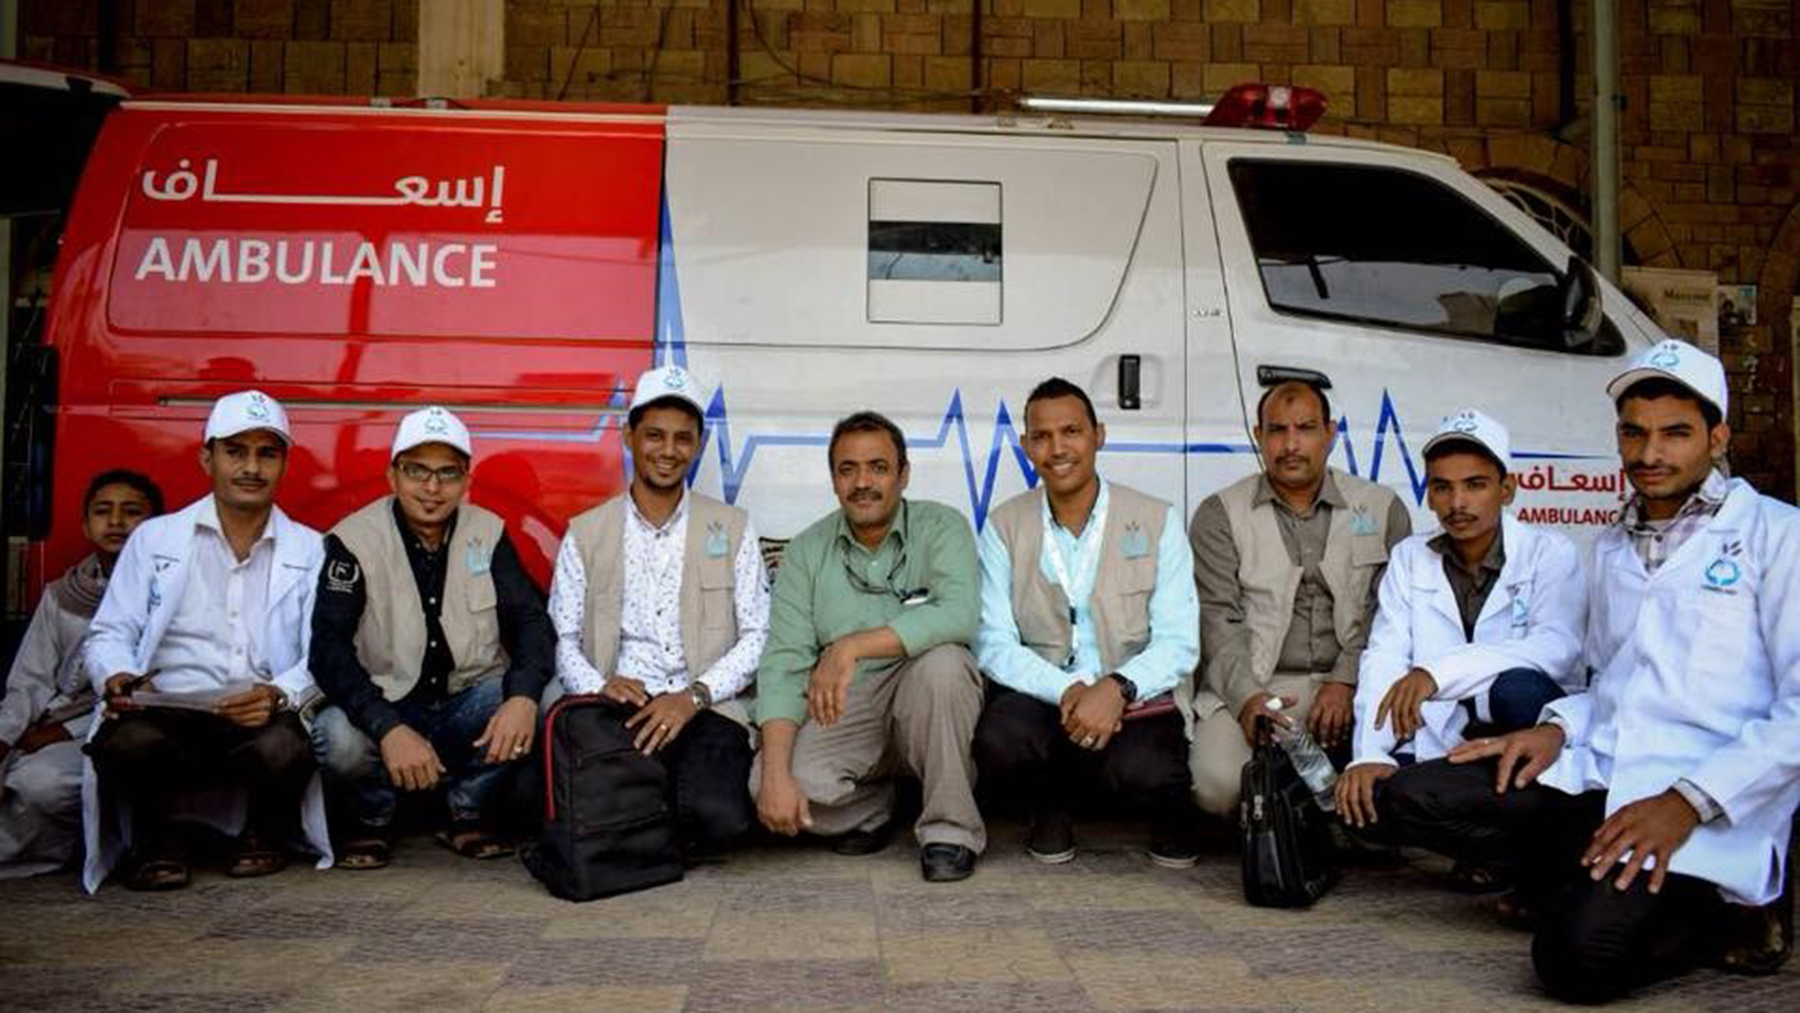 First responders pose outside of an ambulance in Hodeidah. (Photo courtesy of Yemen Aid)